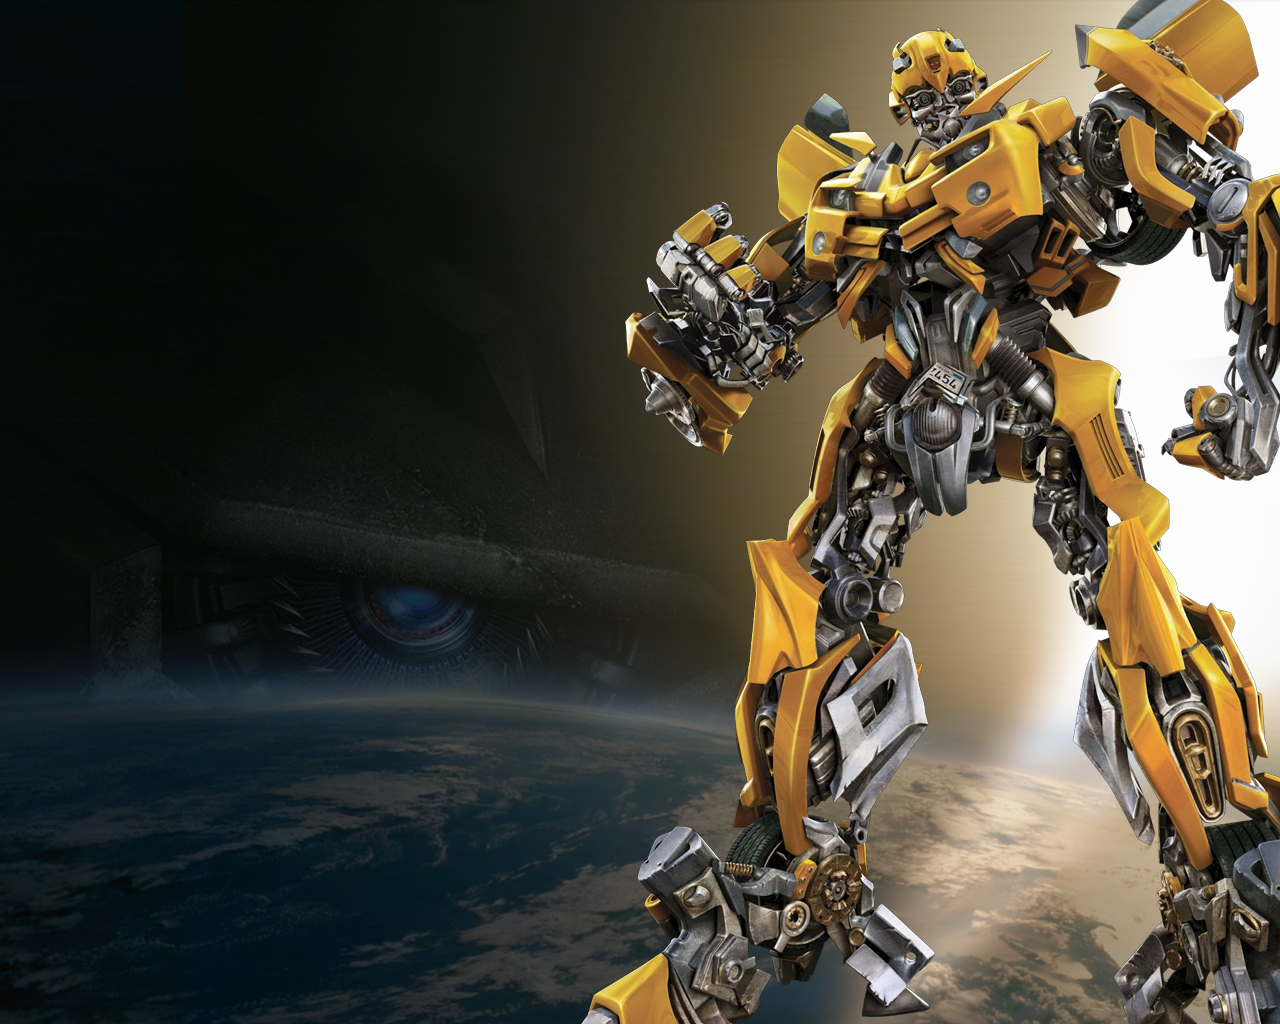 Transformers Wallpapers Photos beautifully pictured on Digital Photo 1280x1024